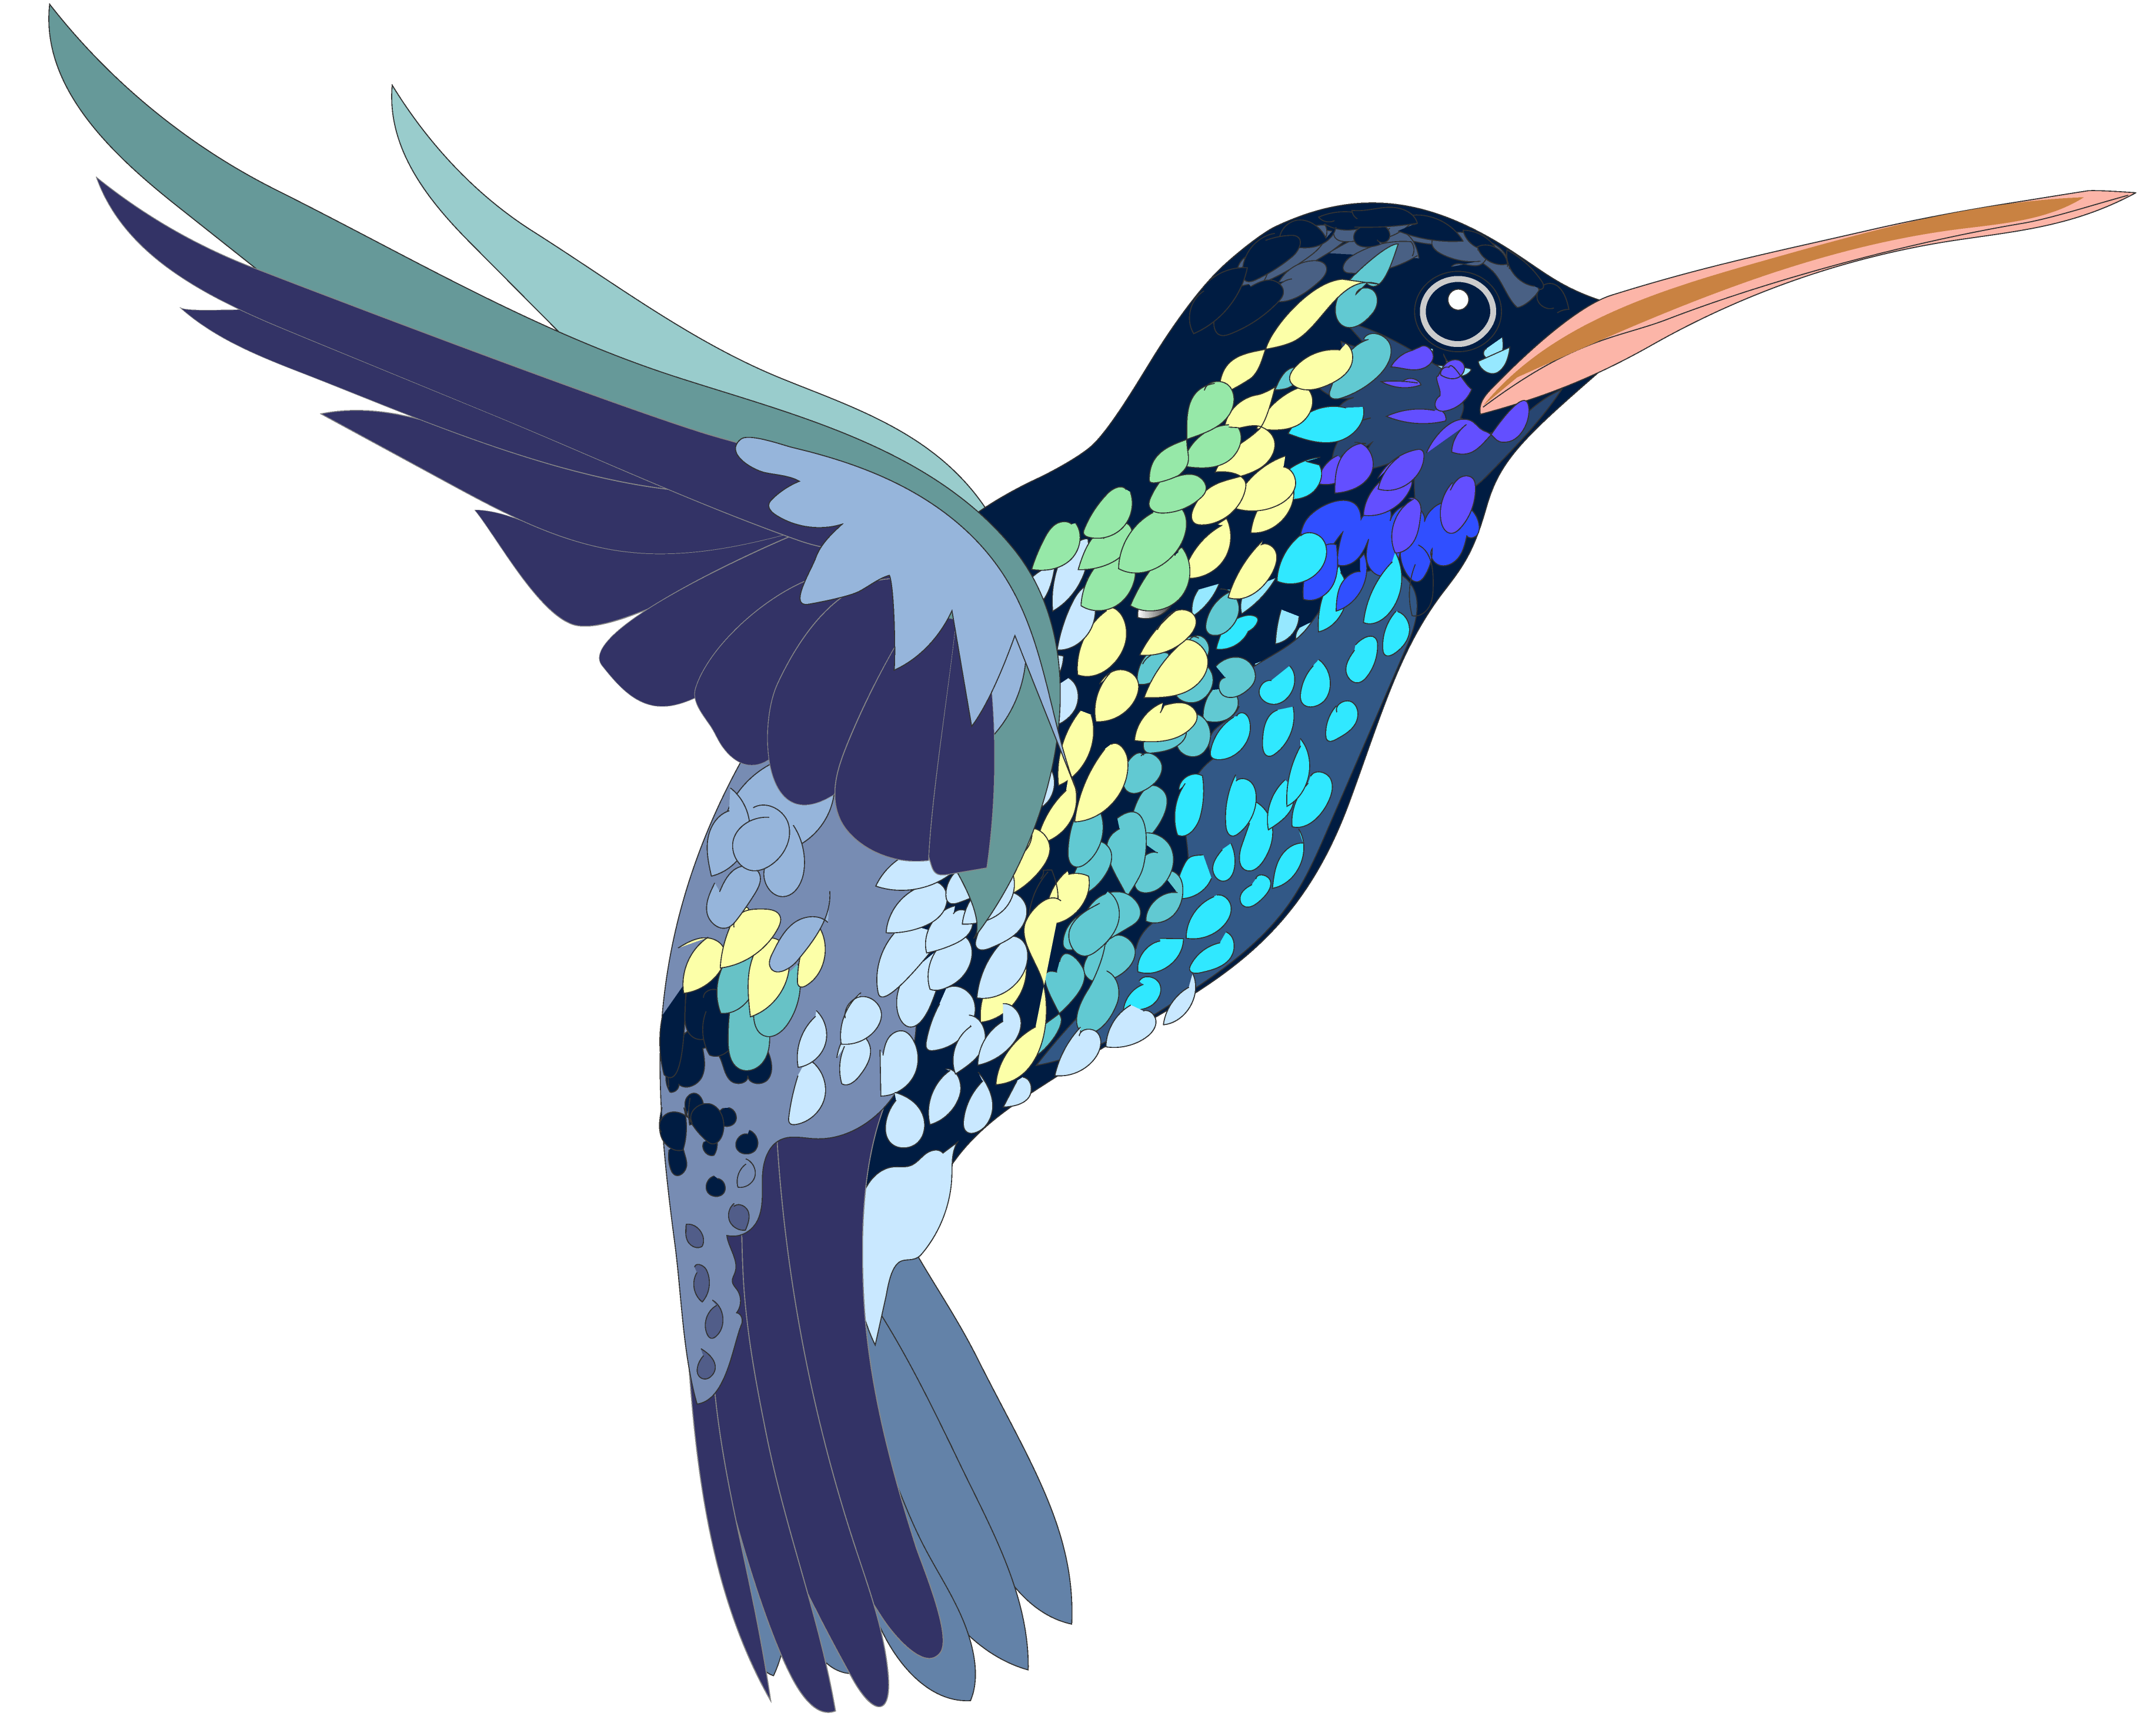 Hummingbird clipart. Clip art creation creatures